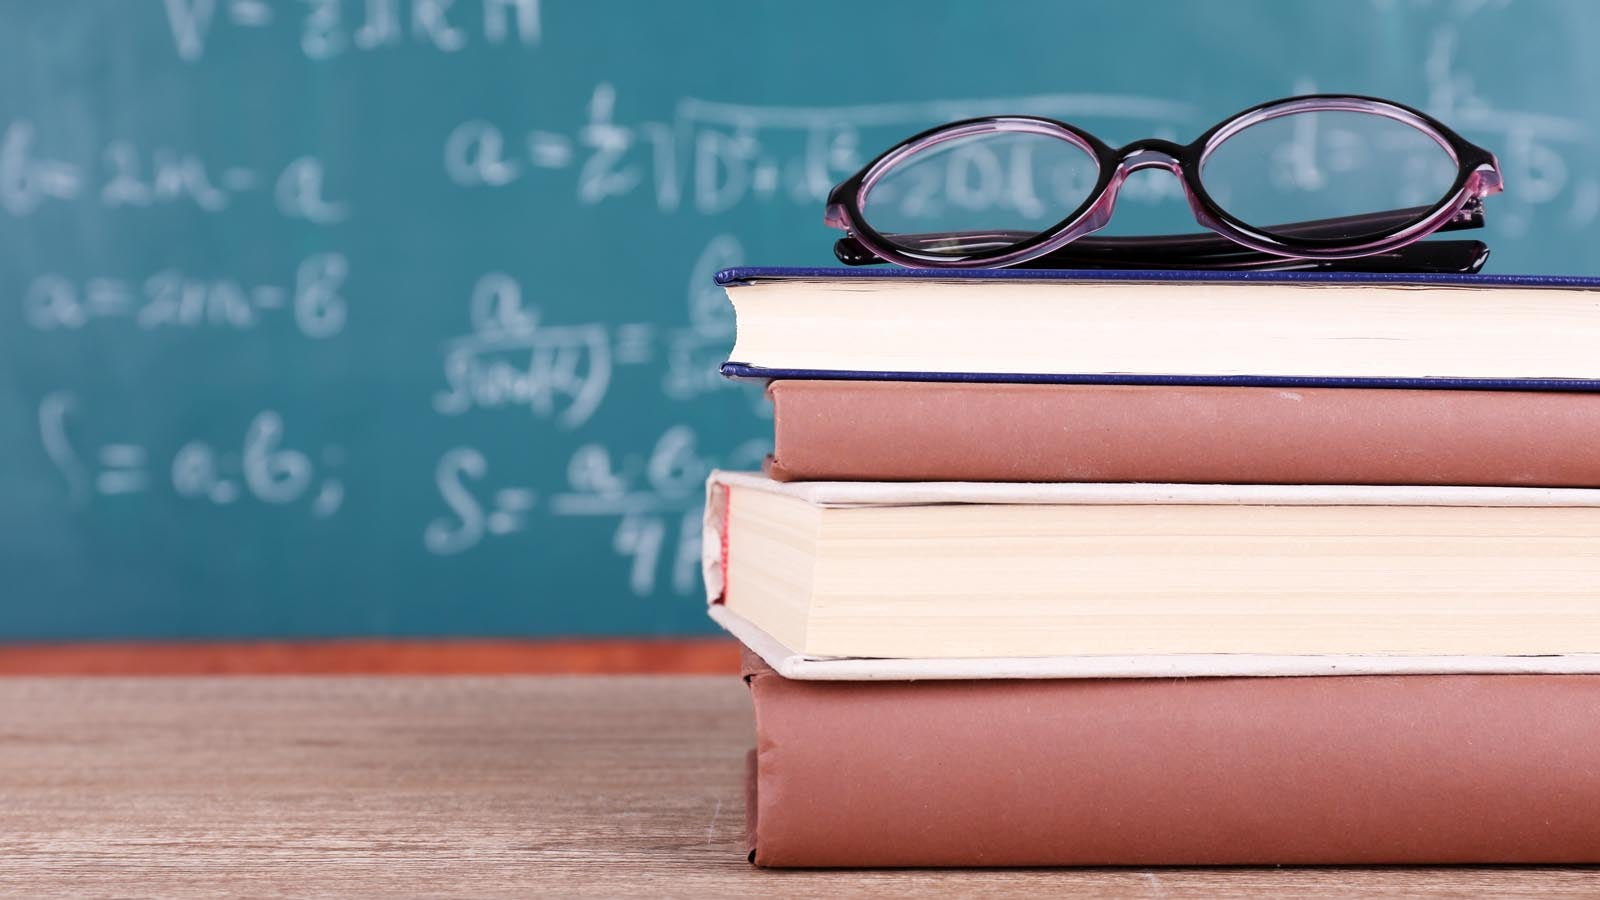 A pair of glasses on top of a stack of books, with a blurred chalkboard in the background